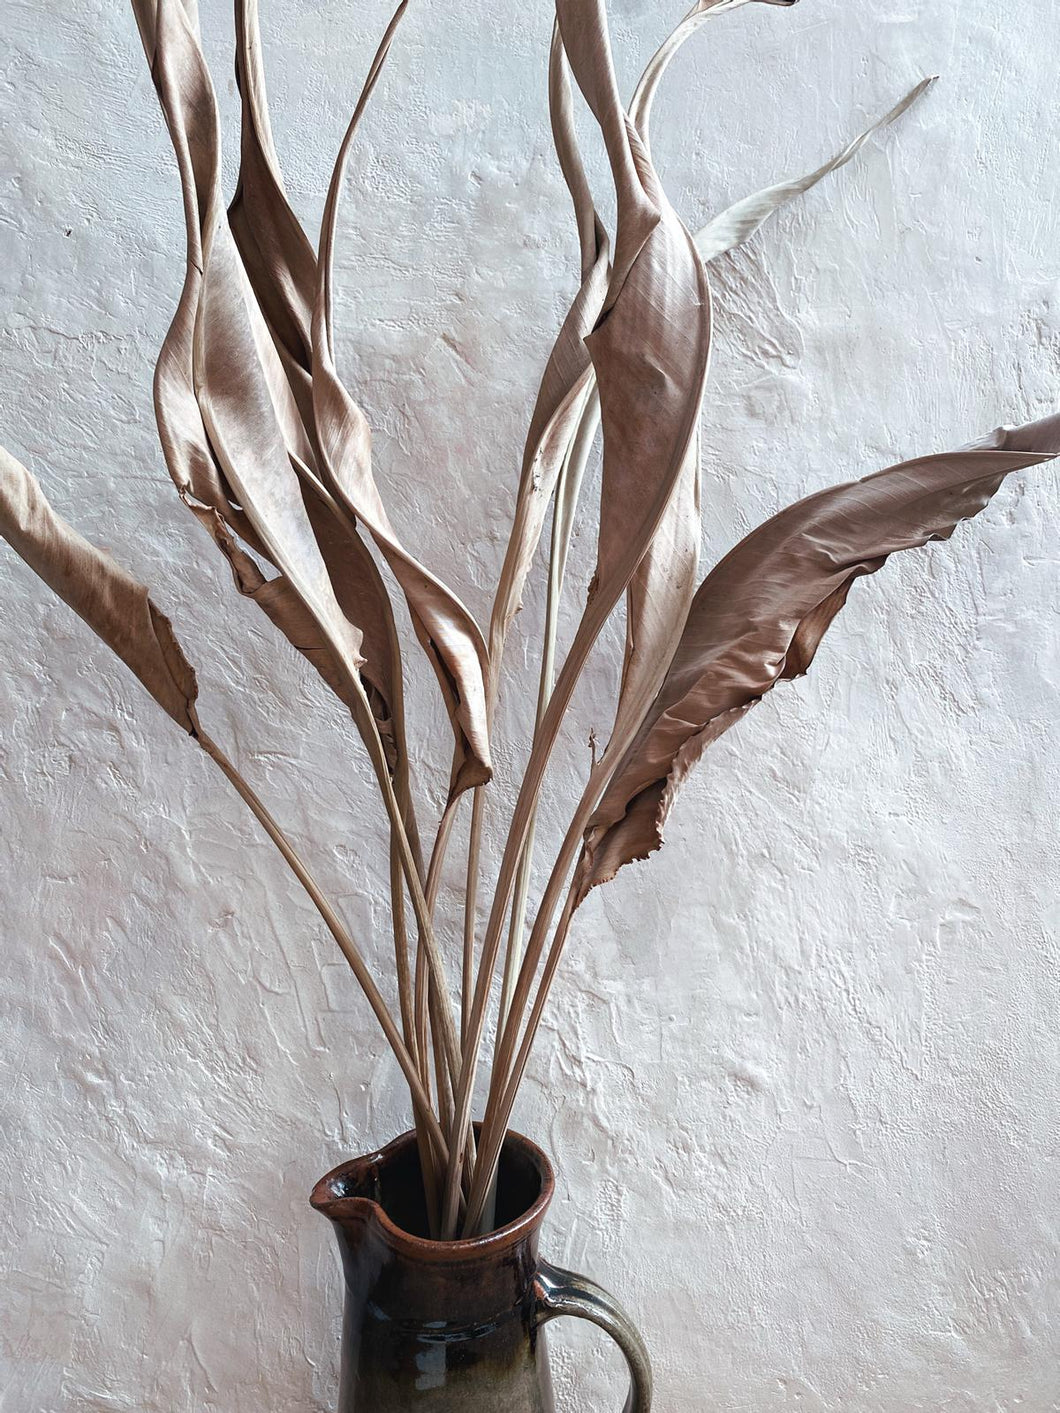 Dried Strelitzia leaves